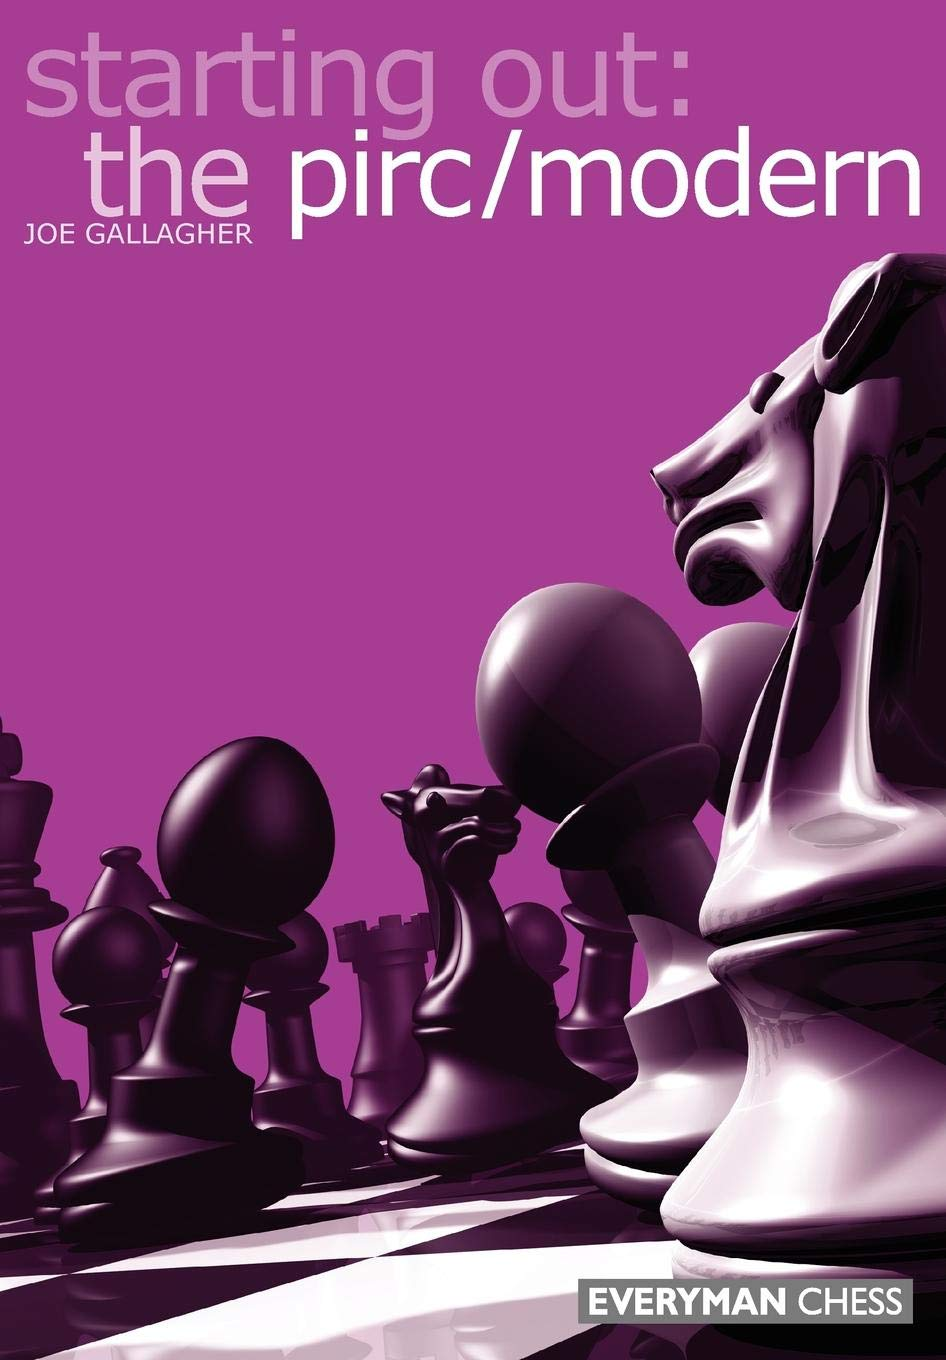 Starting Out: The Pirc/Modern, Everyman Chess, ISBN 1-85744-336-5